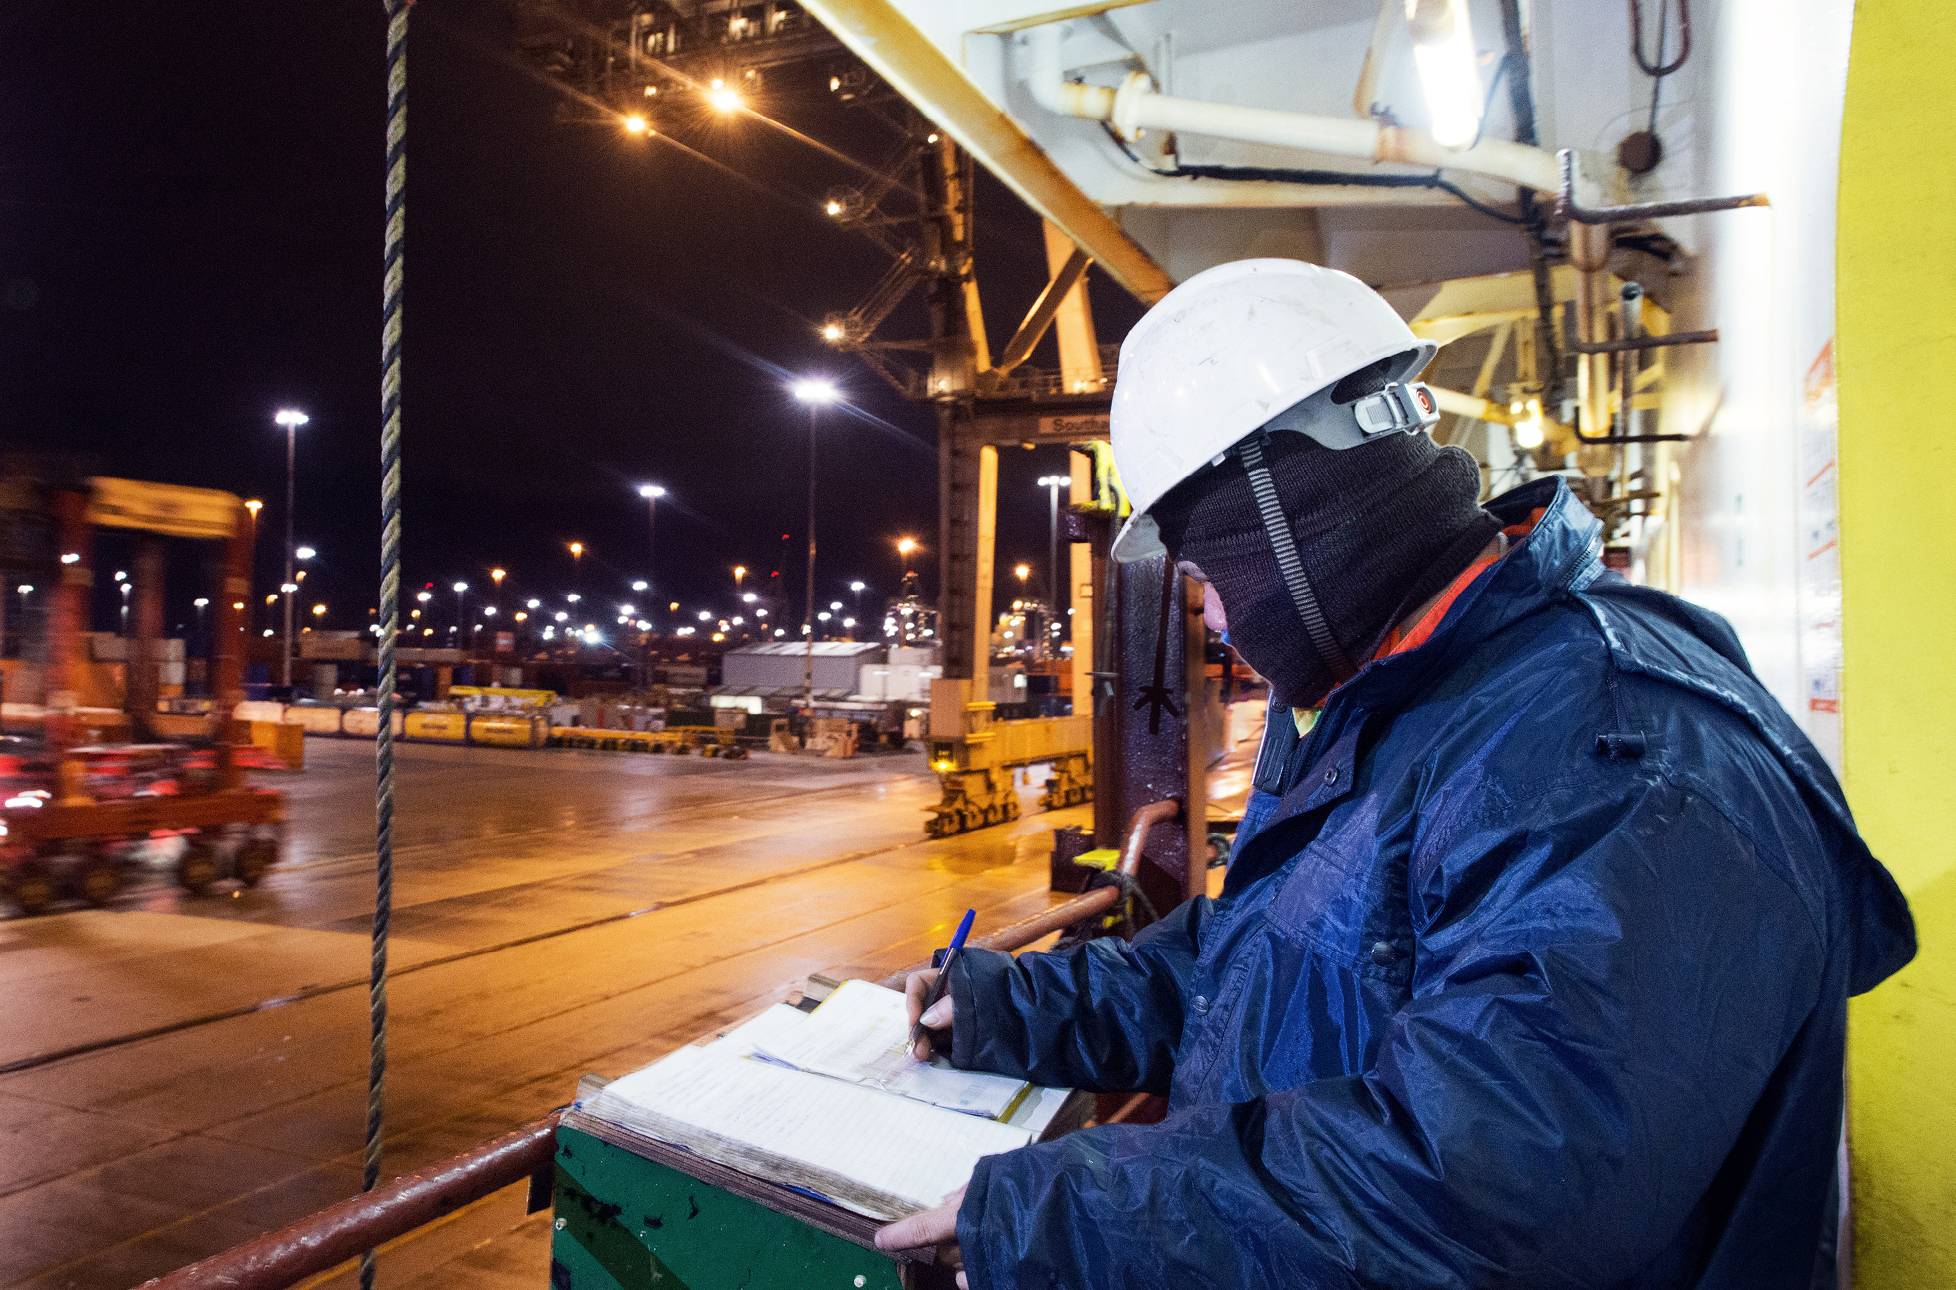 Workman completing paperwork on the job at night